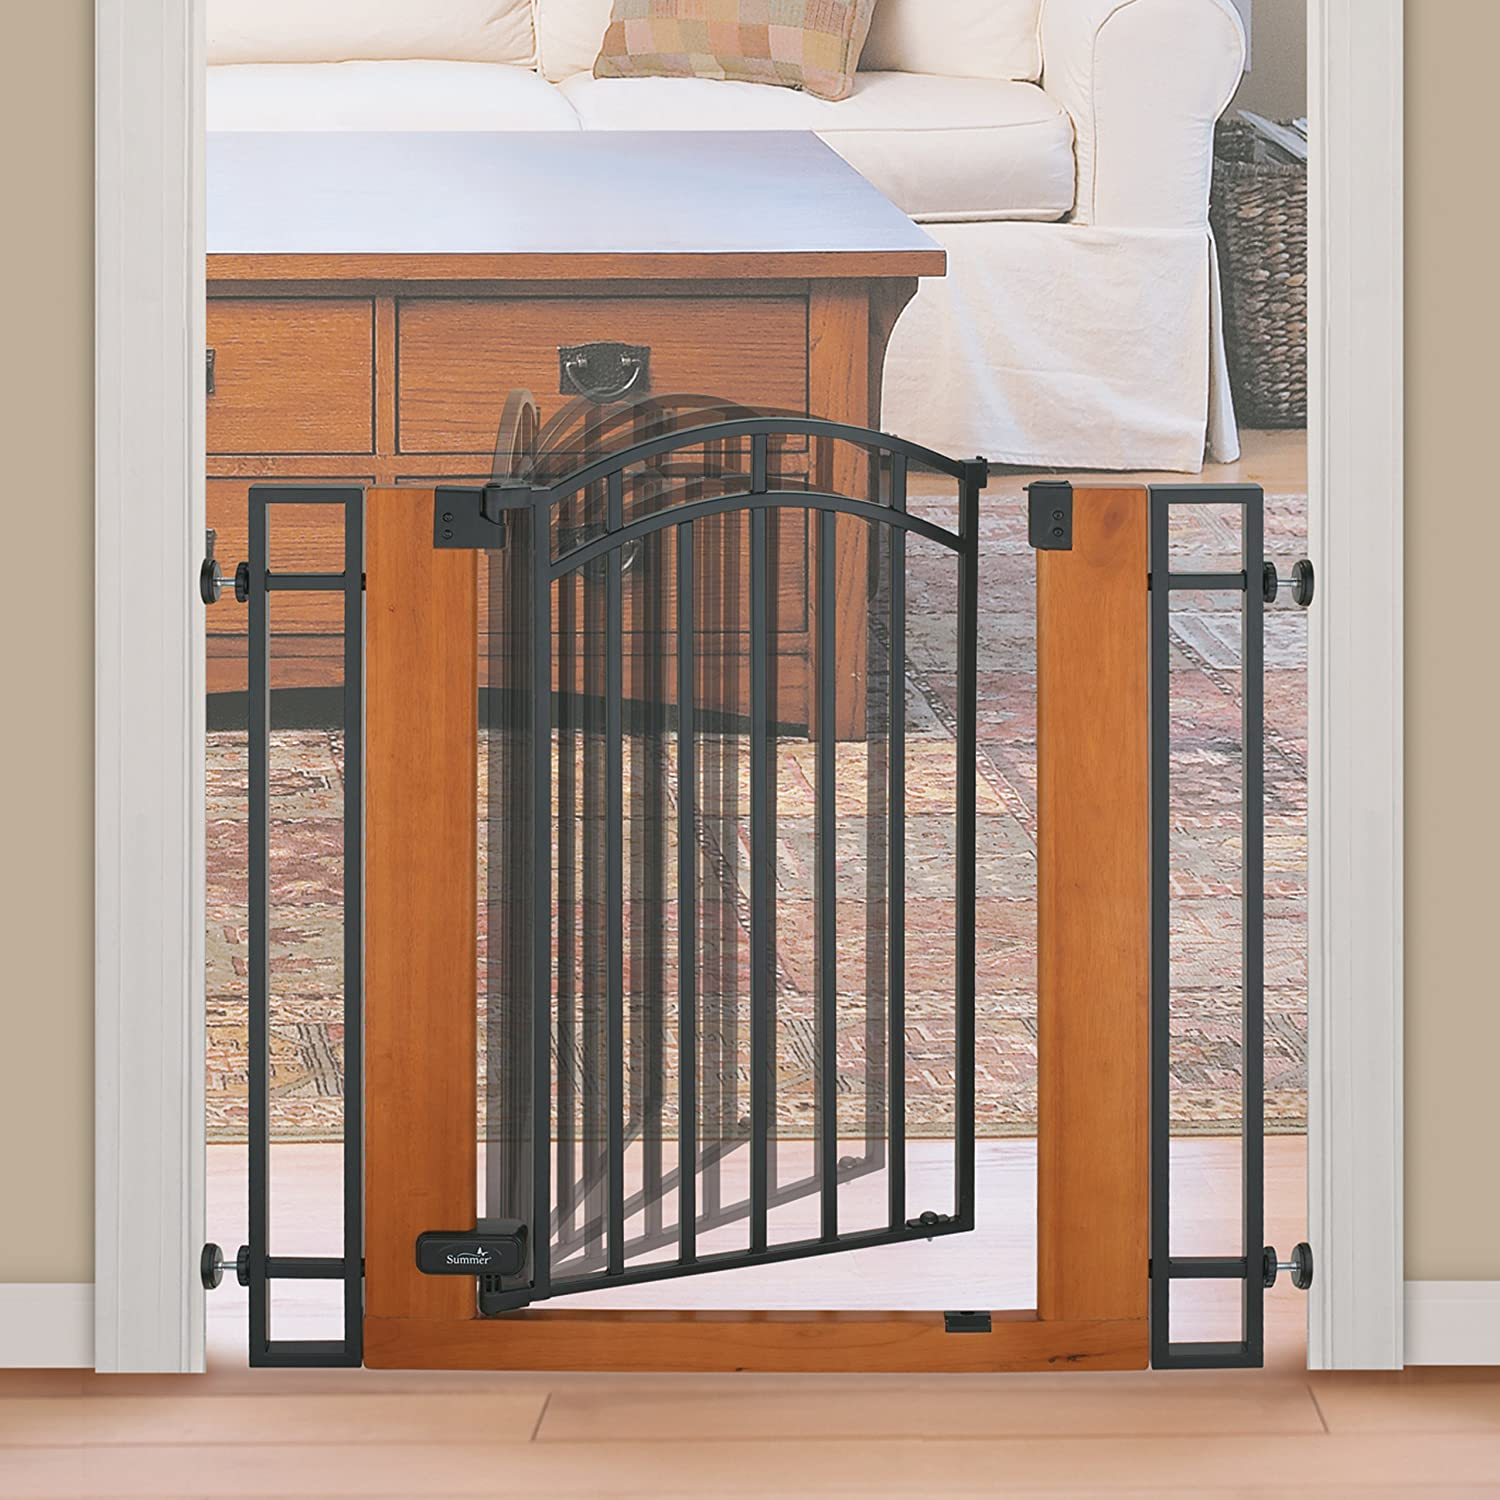 Amazon.com : Summer Infant Wood and Metal Walk-Thru Gate, Brown ...